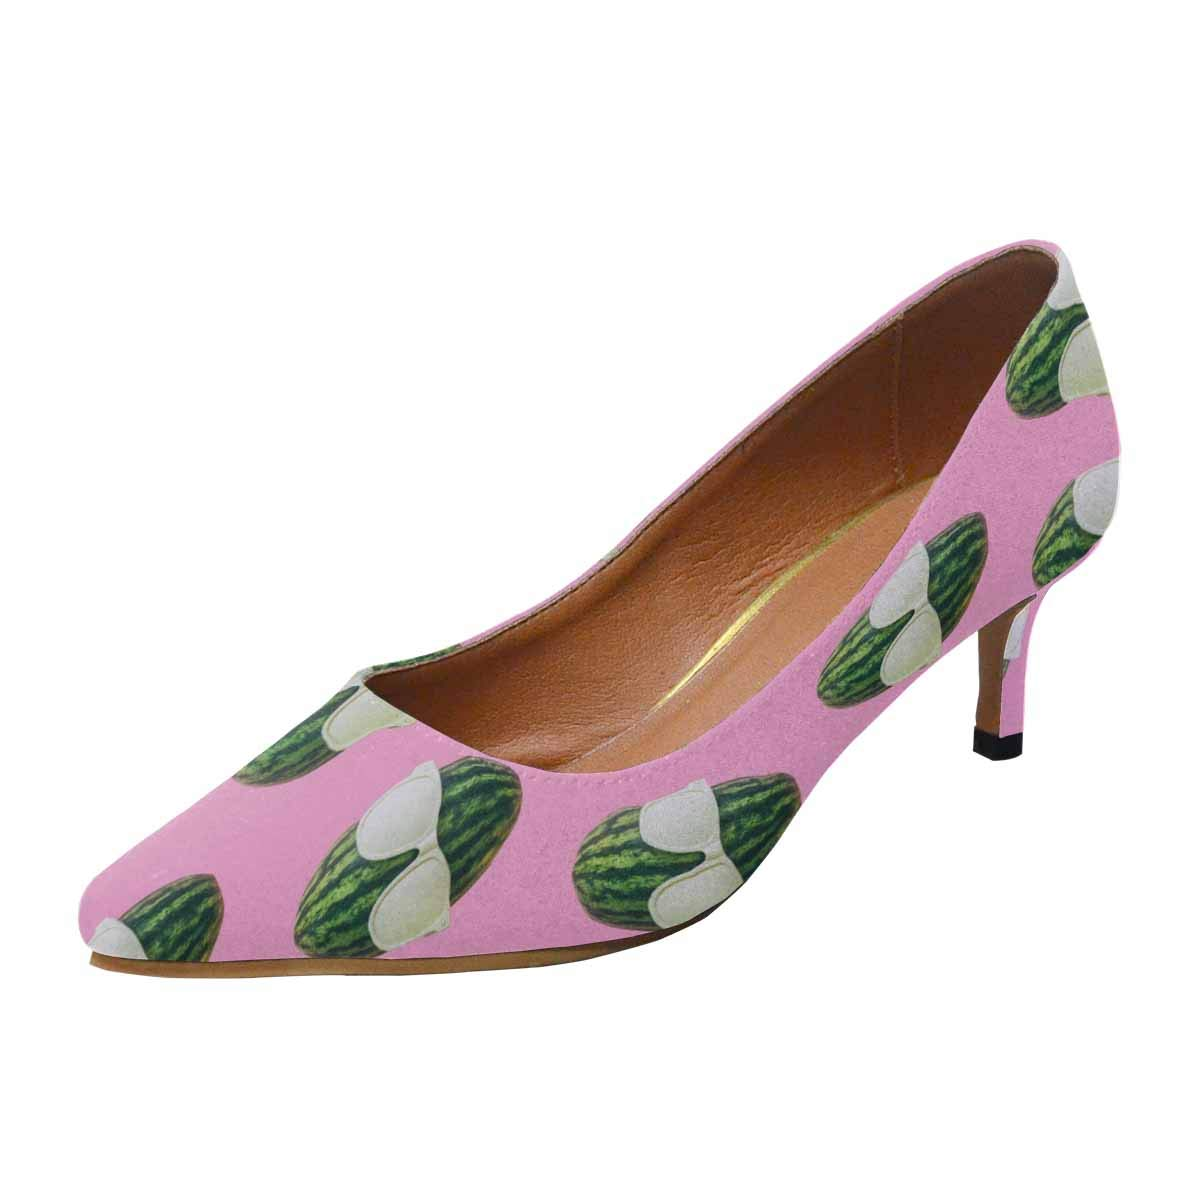 InterestPrint Women's Low Heels Dress Shoes Pointed Toe Pump Watermelon Heads with Sunglasses on Pink US8